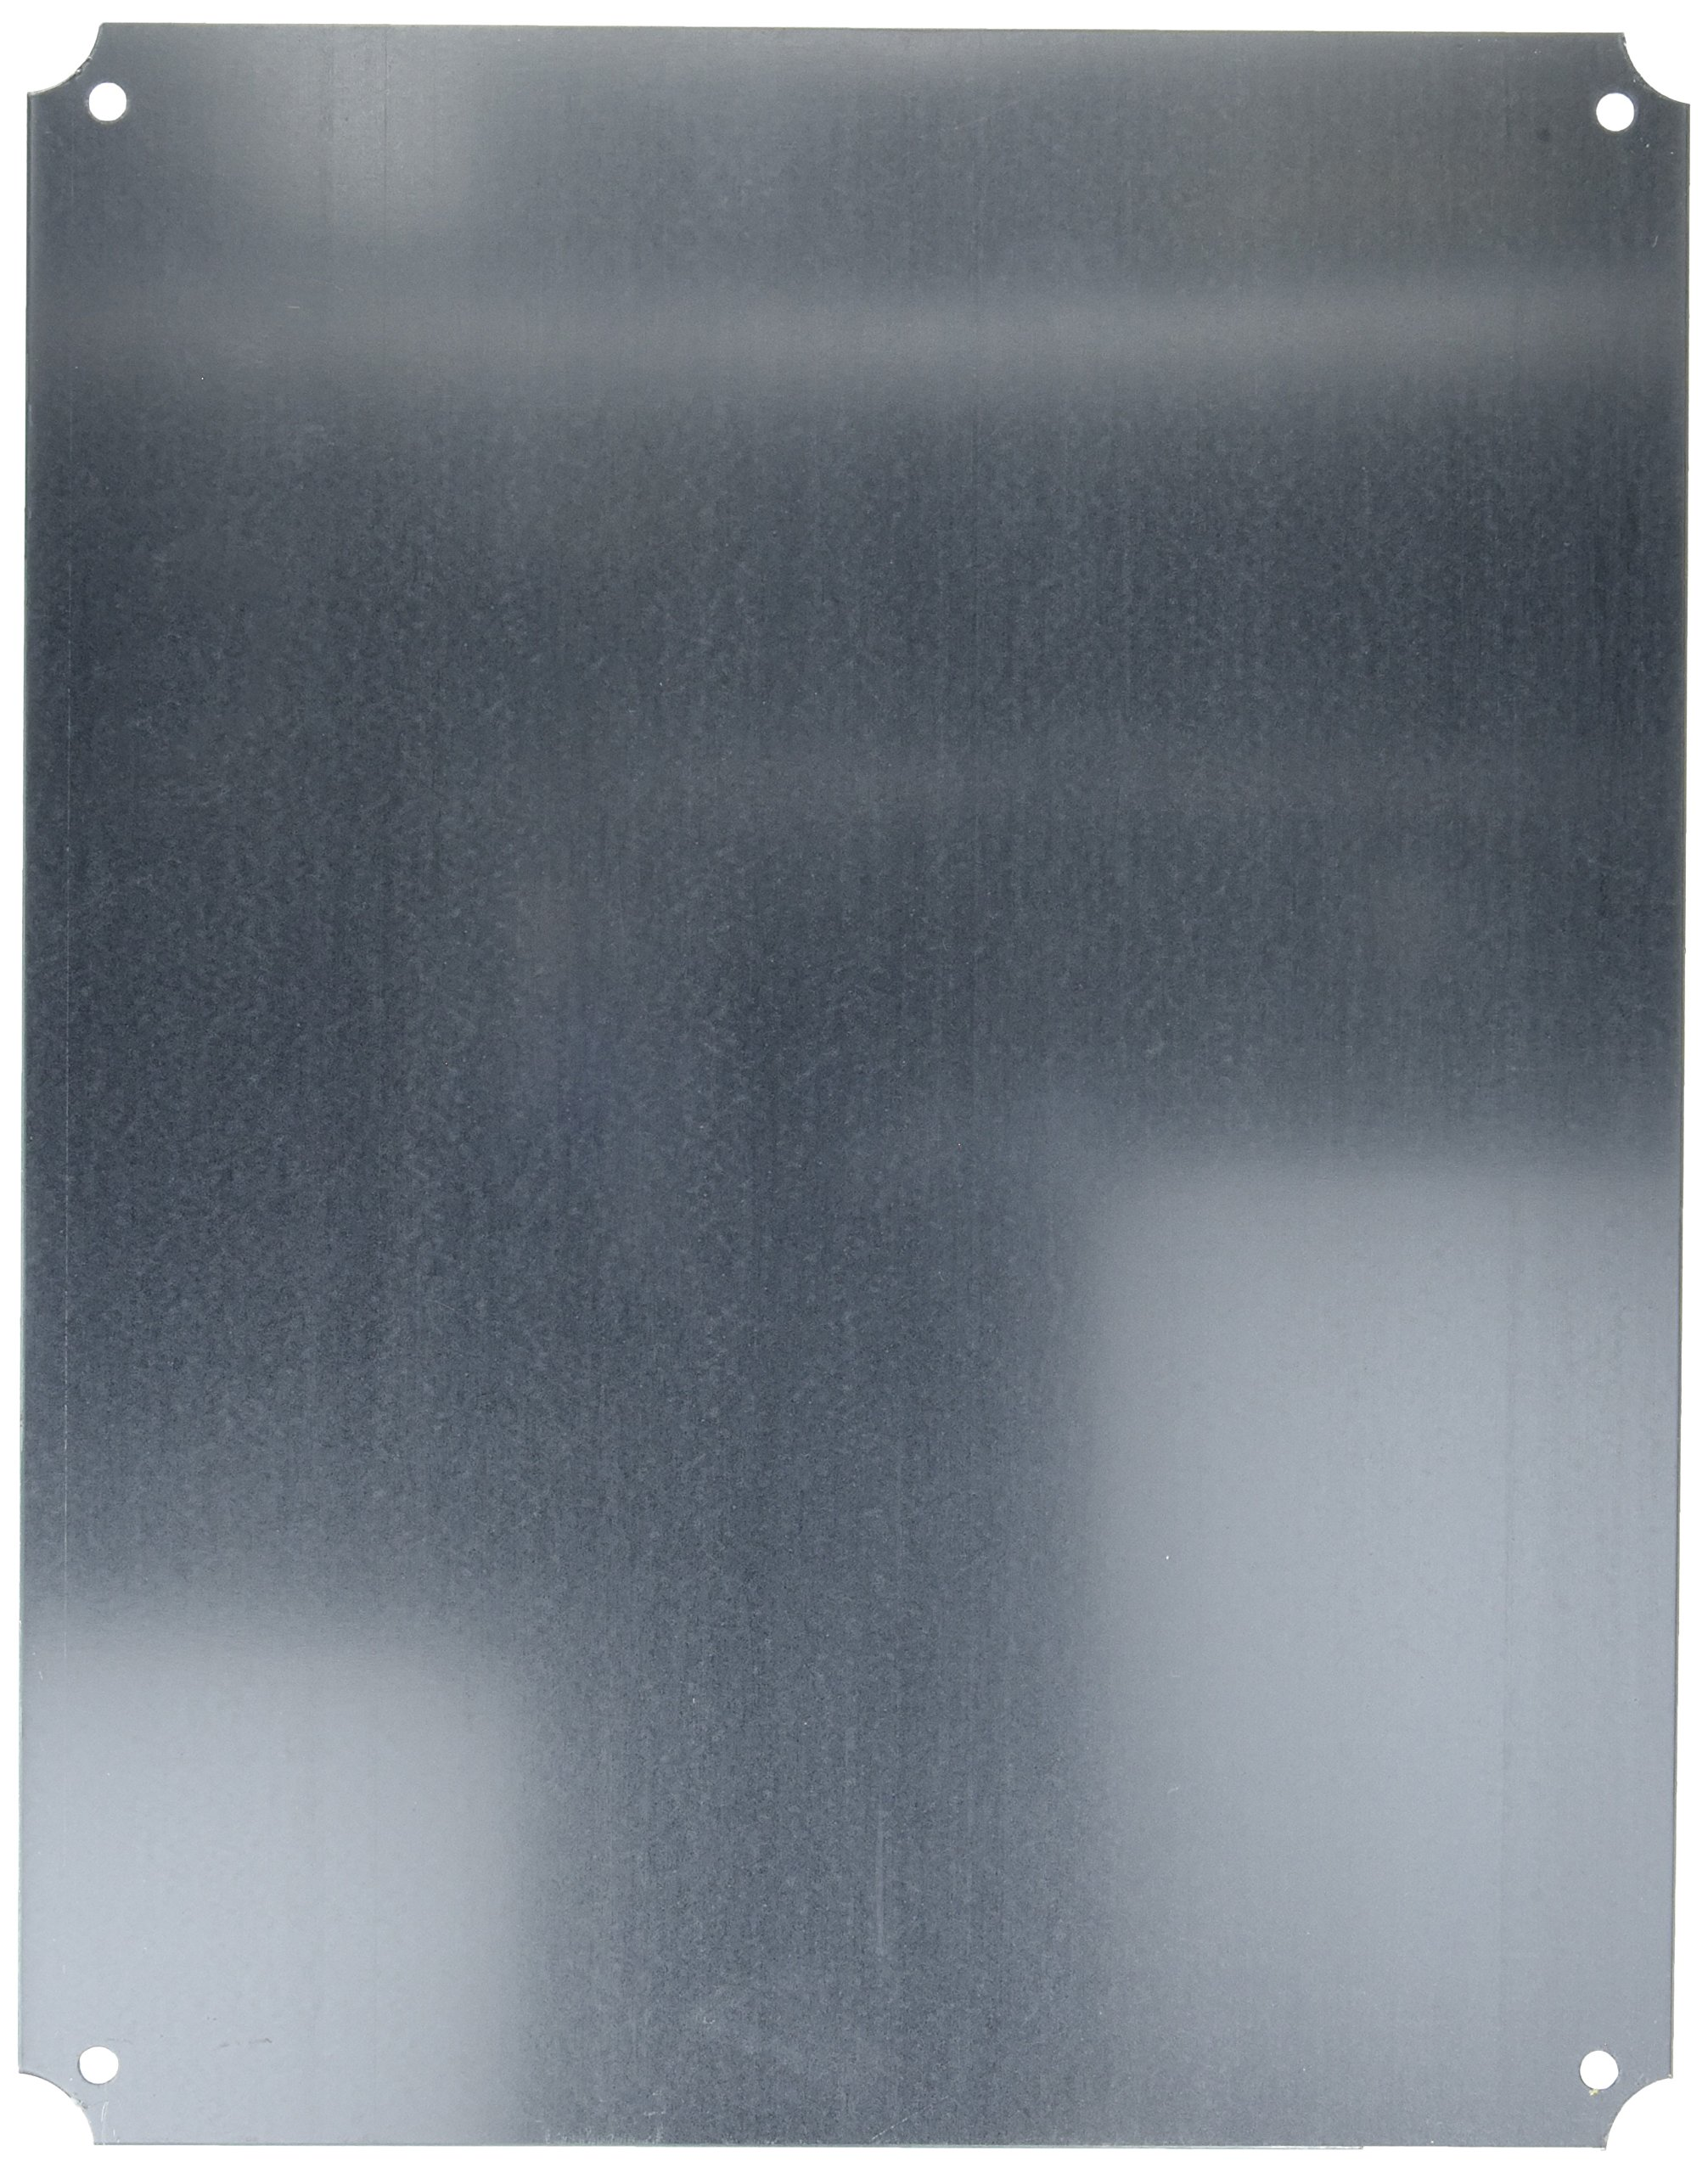 BUD Industries NBX-32932 Steel Internal Panel, 18-7/32'' Length x 14-1/4'' Width x 3/64'' Thick, Natural, for NBF Series Boxes